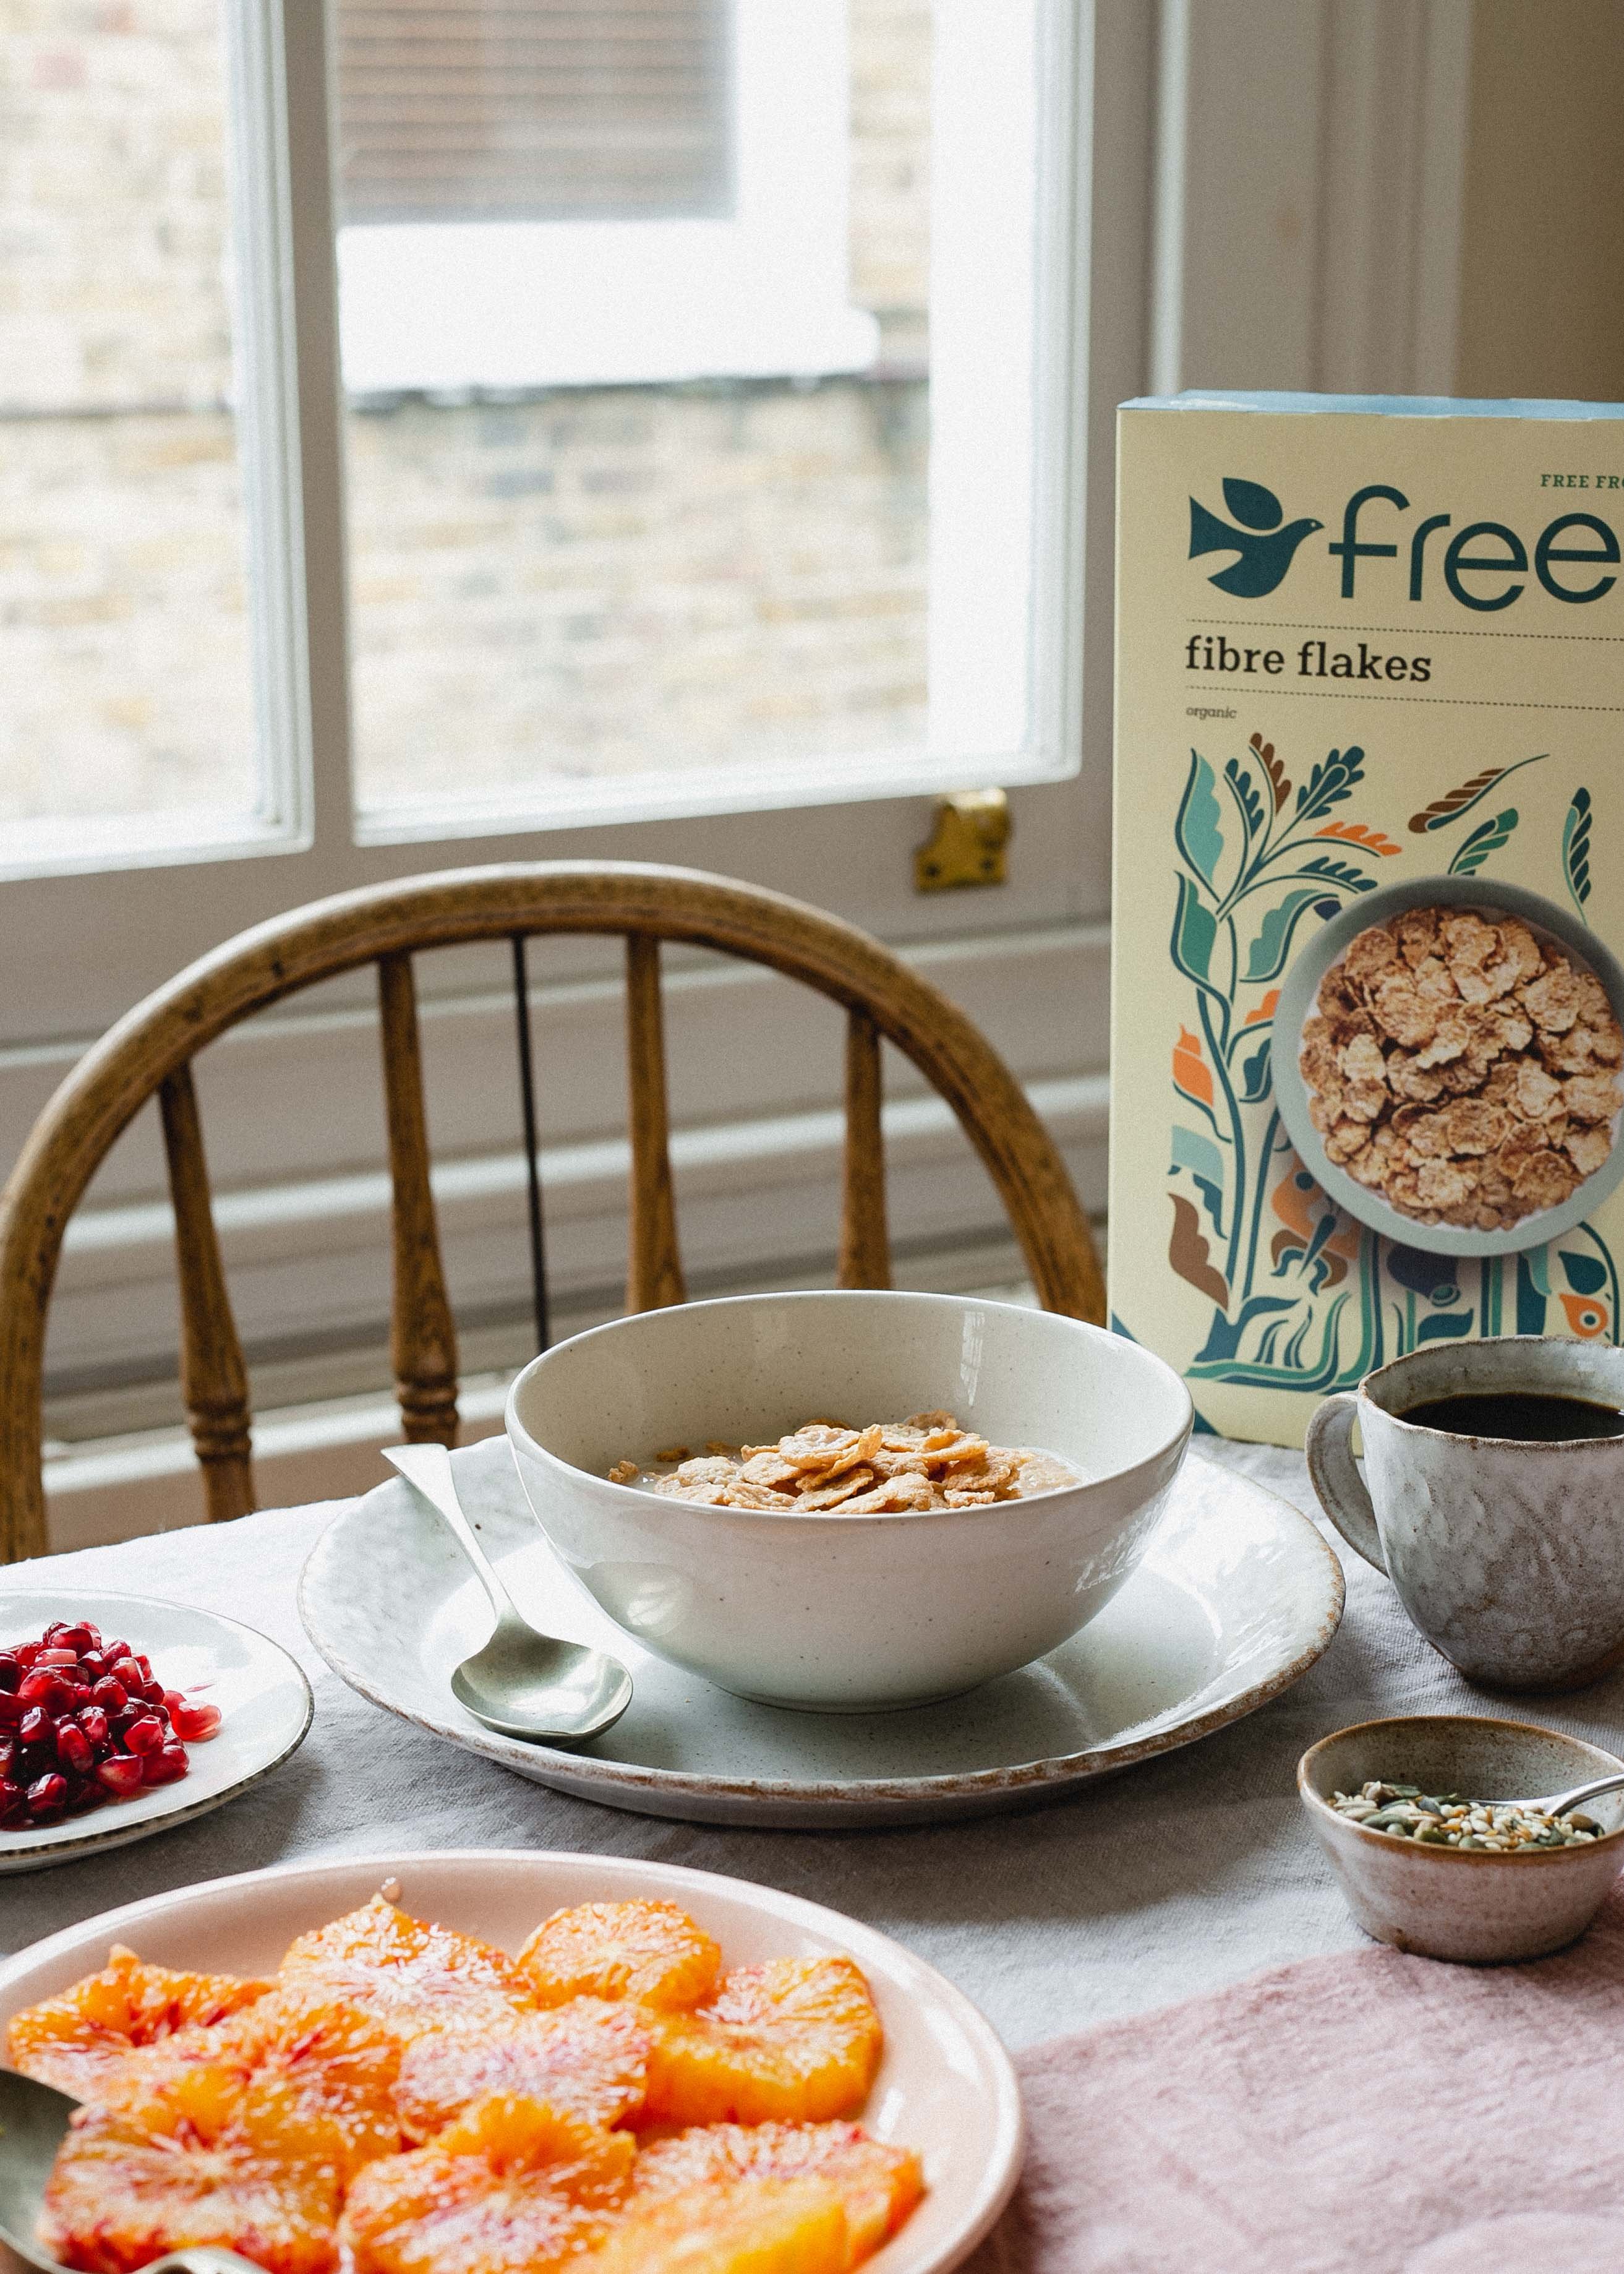 FREEE gluten free cereal